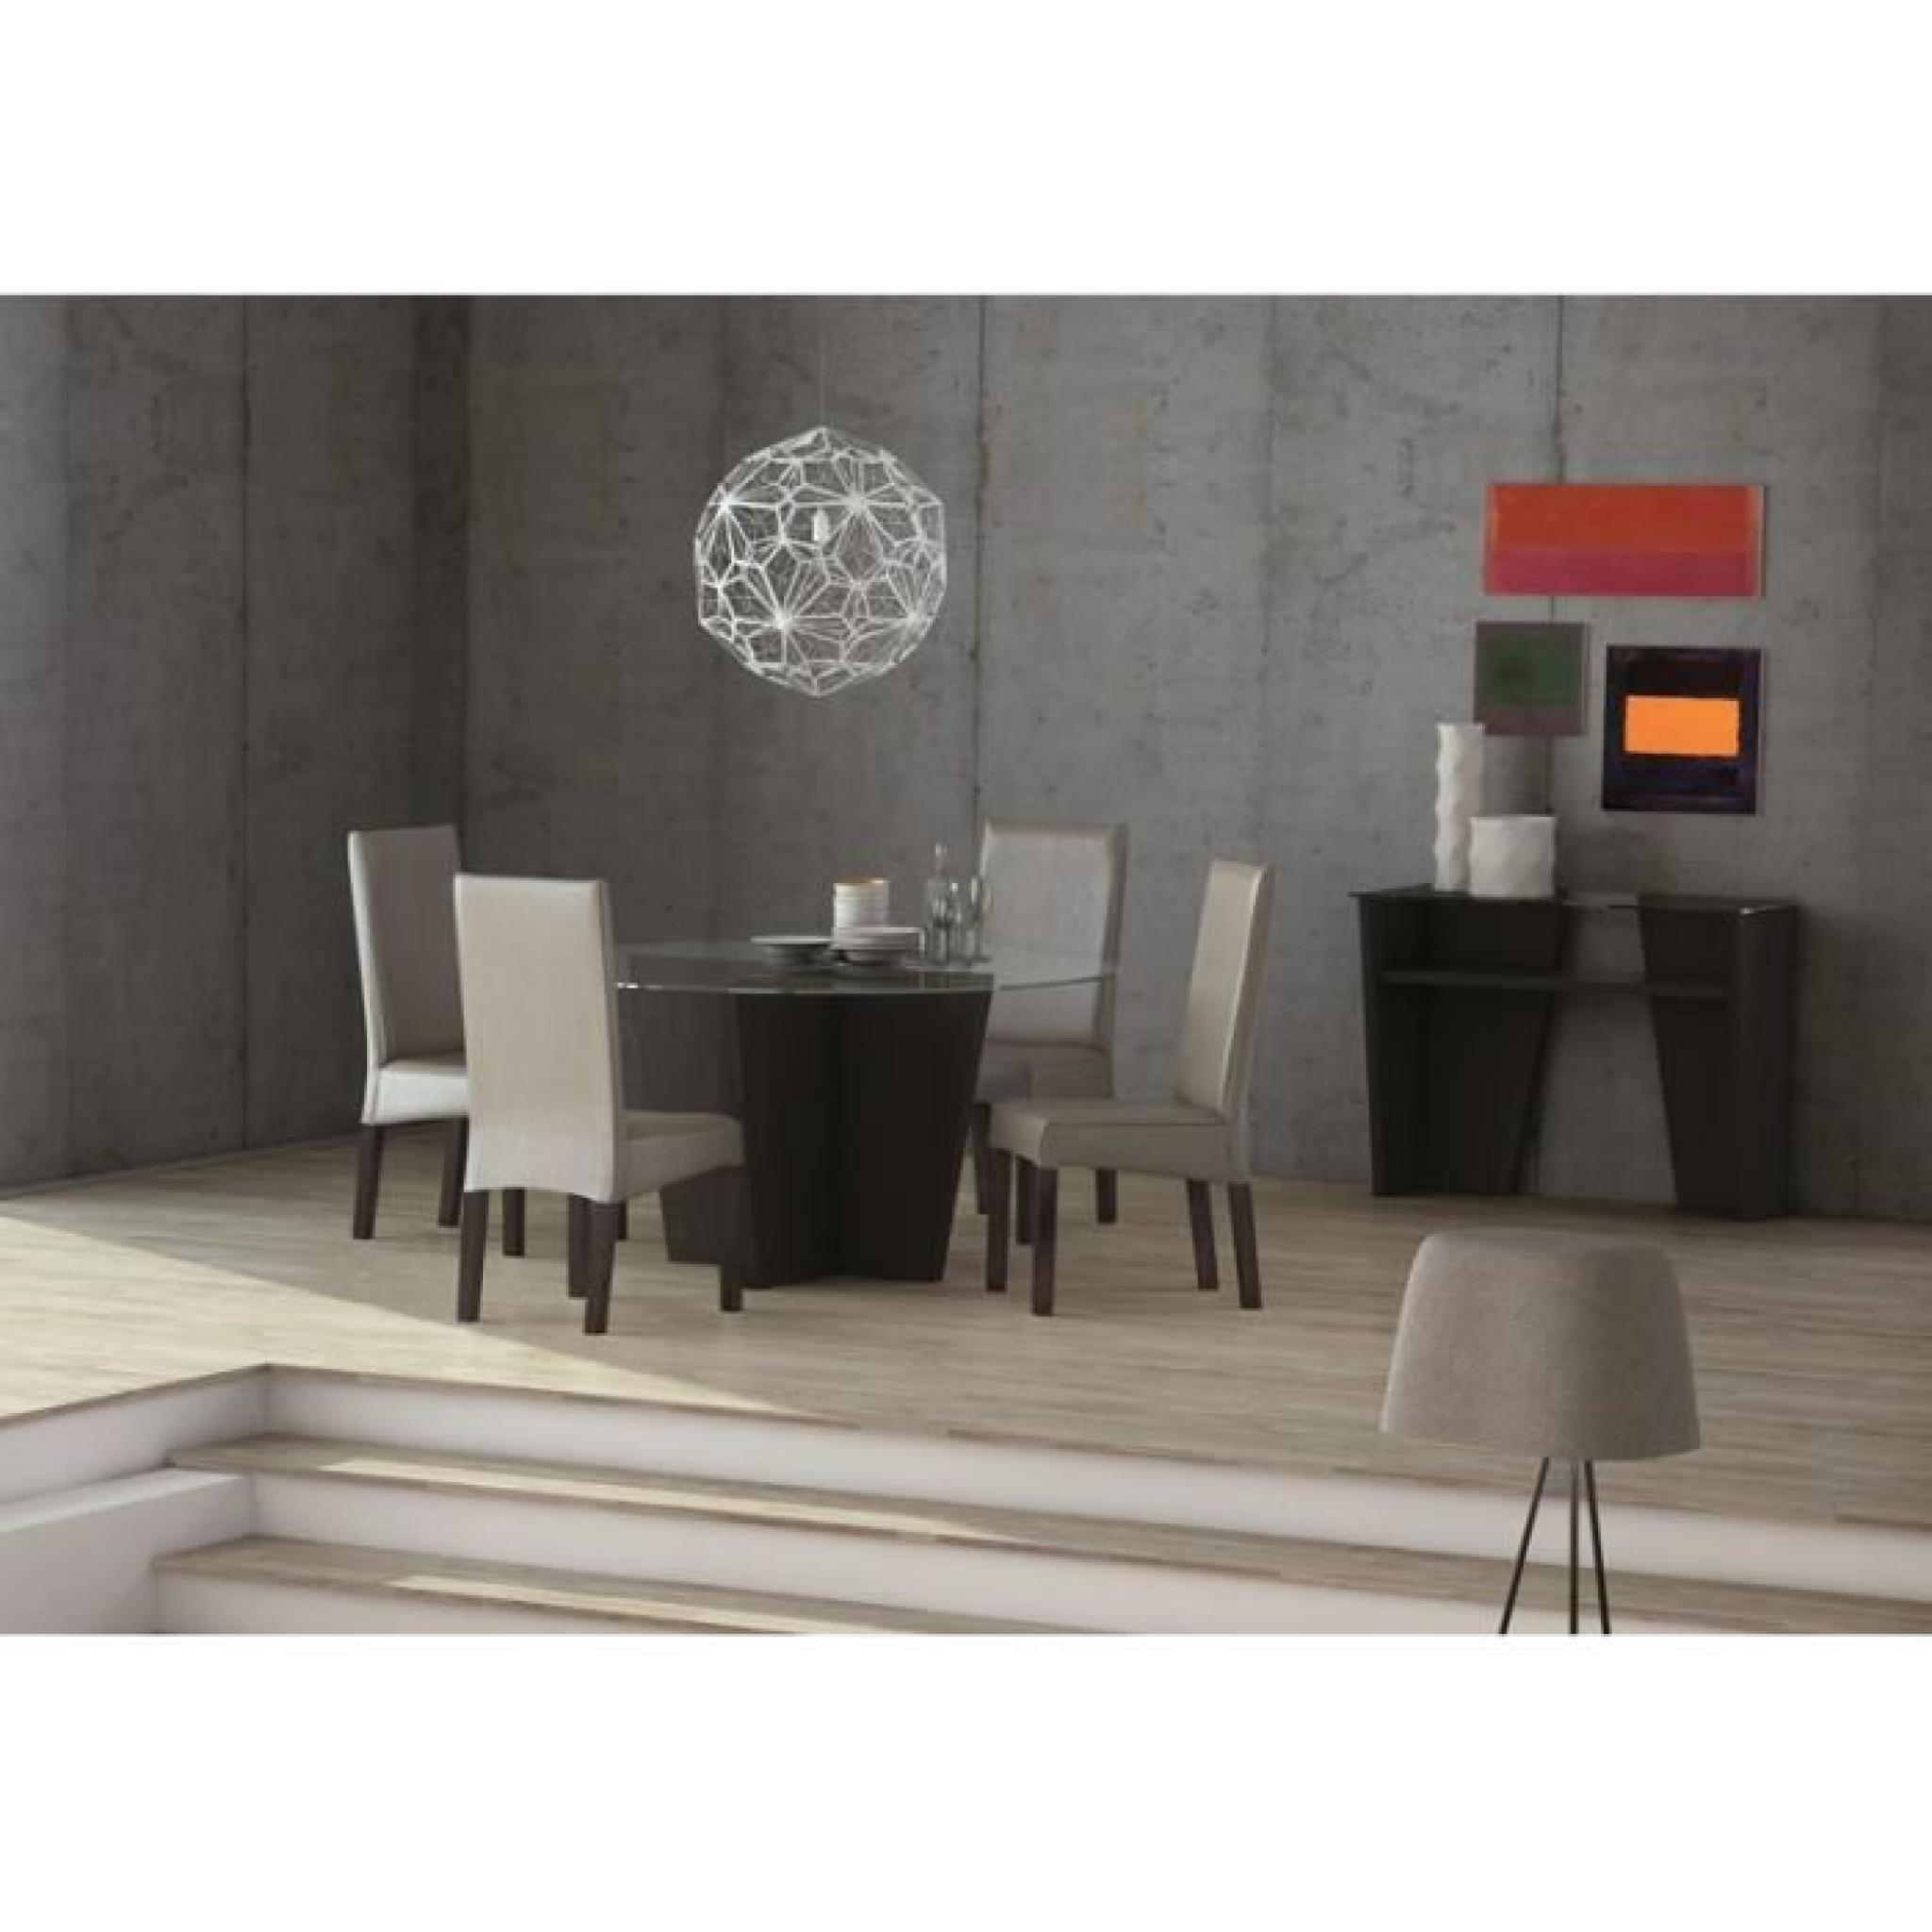 de TemaHome Table Repas Repas TemaHome Table de TemaHome nwvON0m8